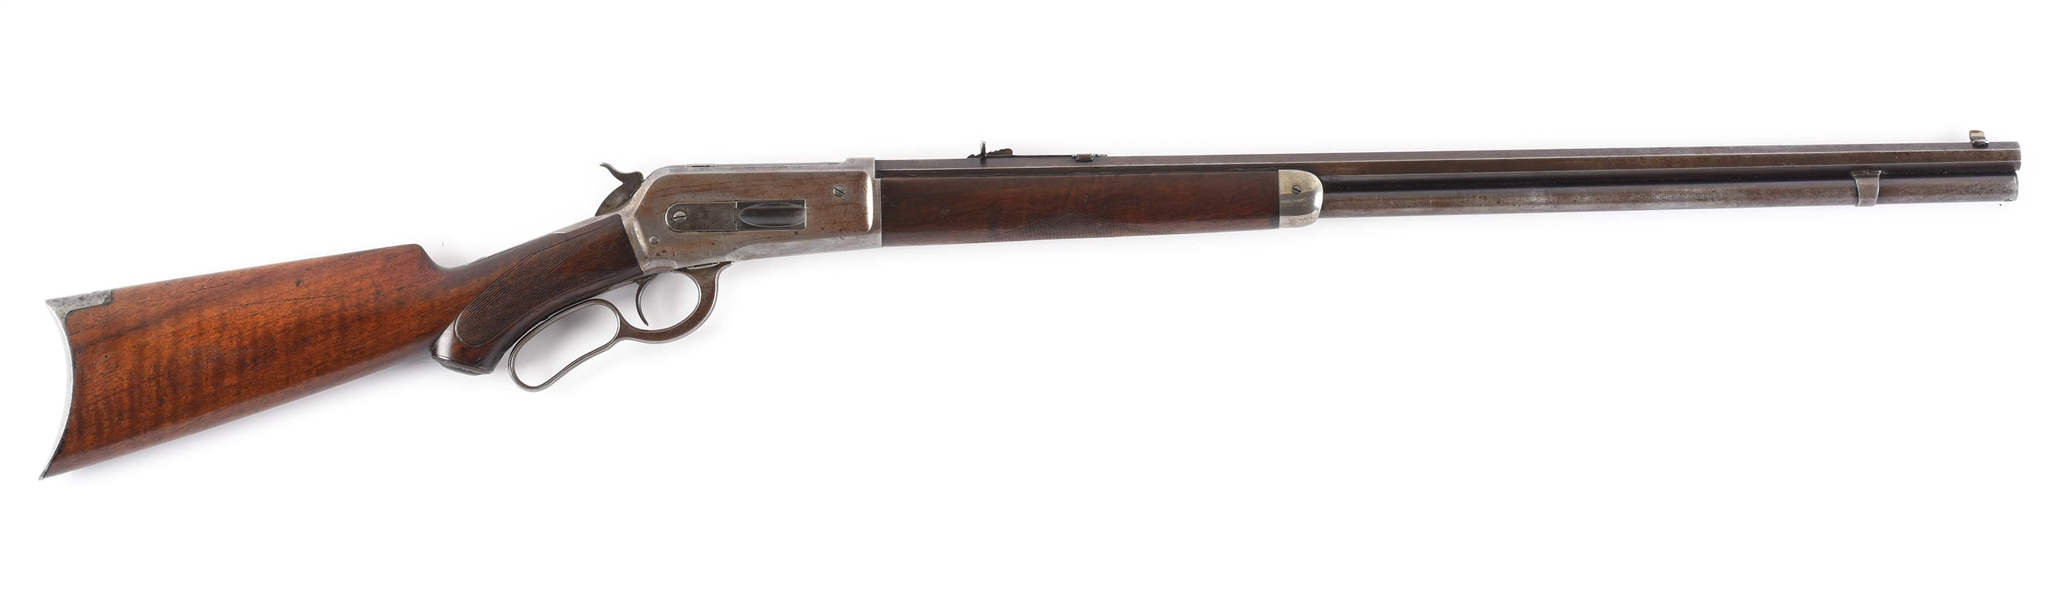 (C) SPECIAL ORDER DELUXE WINCHESTER MODEL 1886 LEVER ACTION RIFLE (1900).